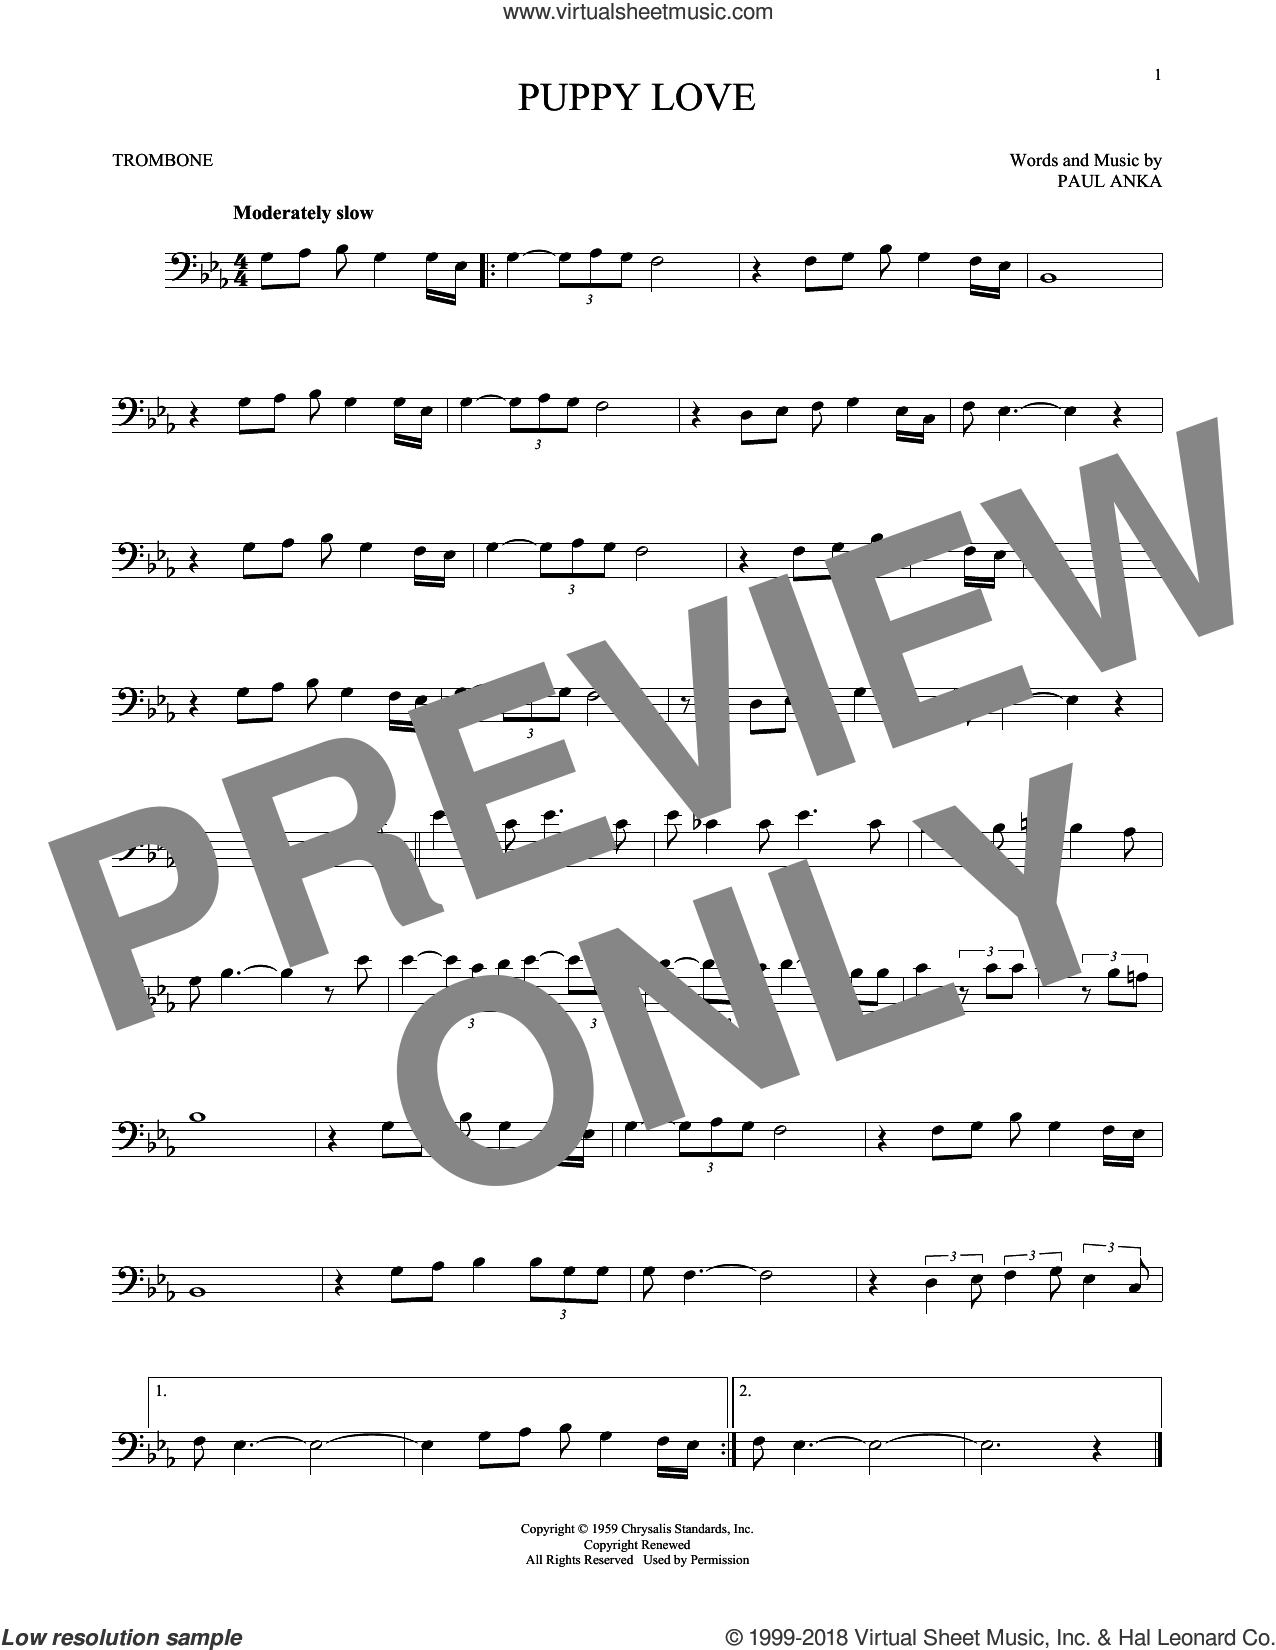 Puppy Love sheet music for trombone solo by Paul Anka and Donny Osmond, intermediate skill level